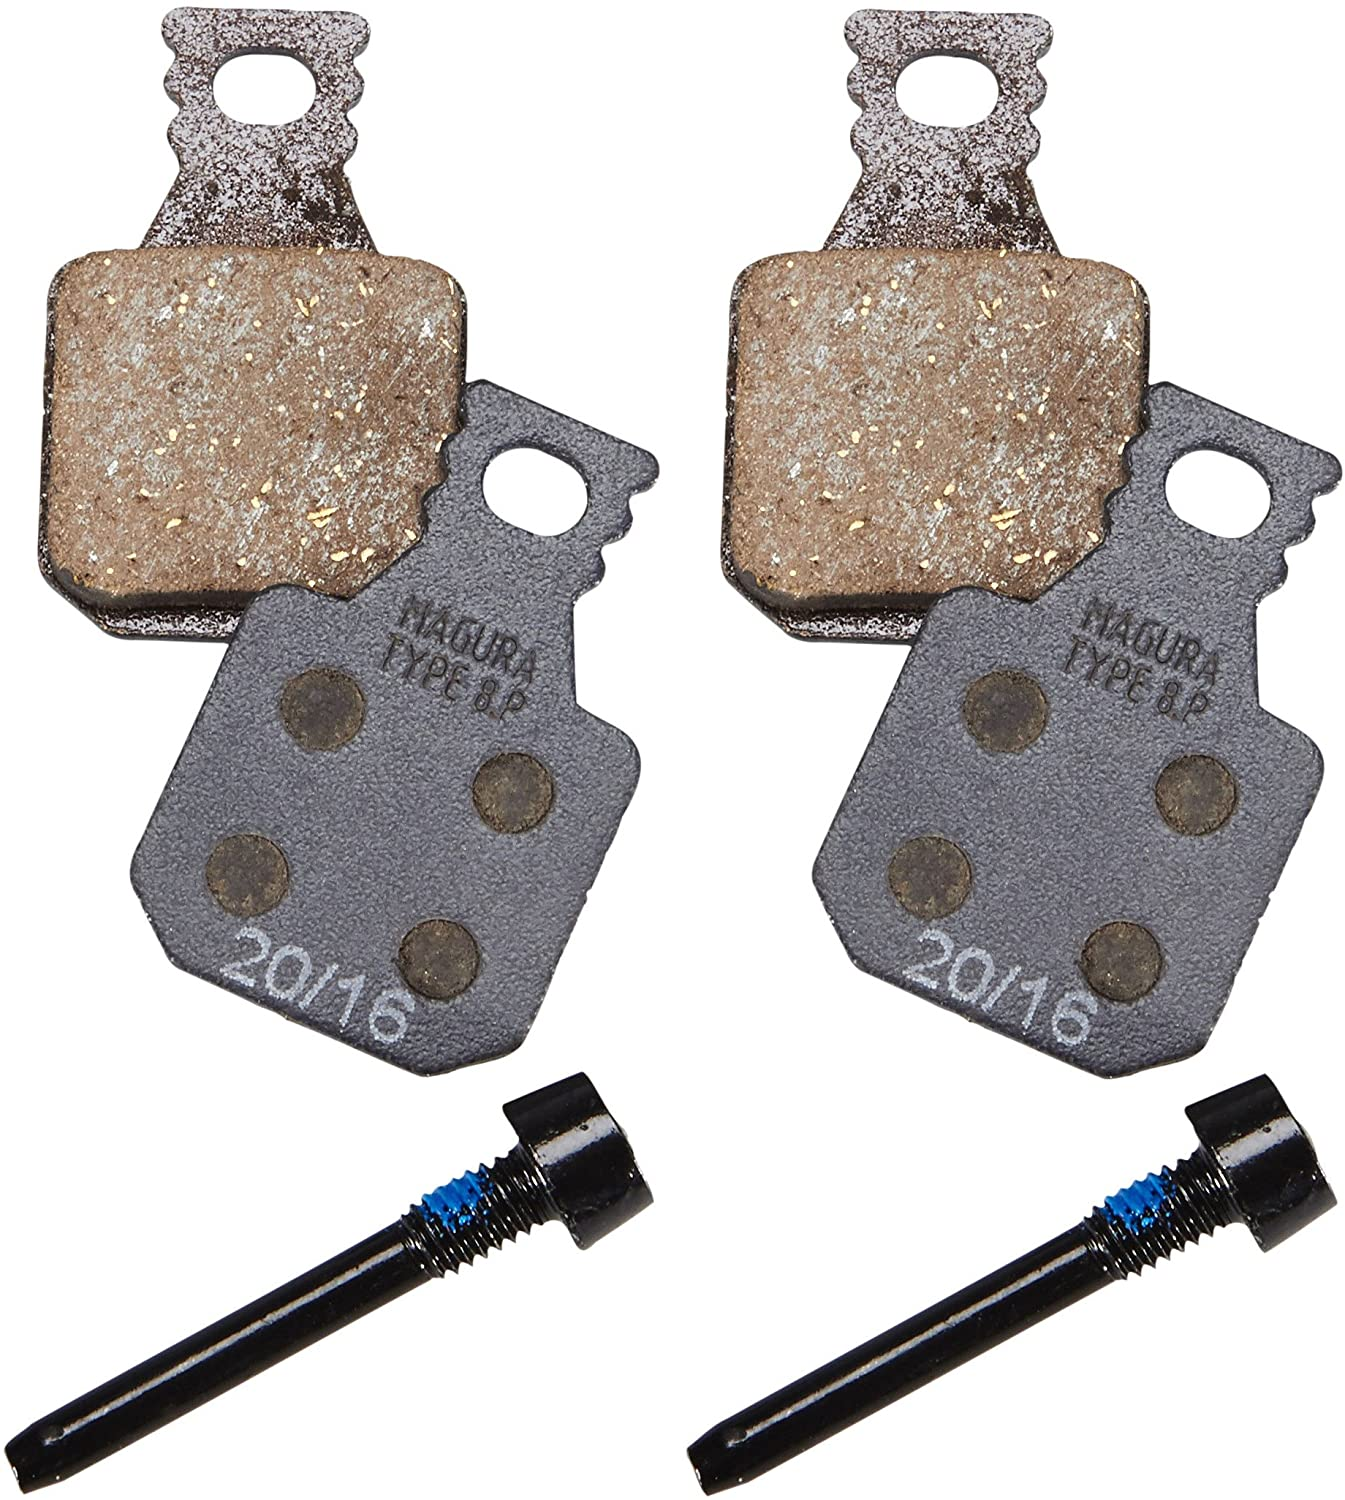 MAGURA 8.R RACE COMPOUND DISC BICYCLE BRAKE PADS